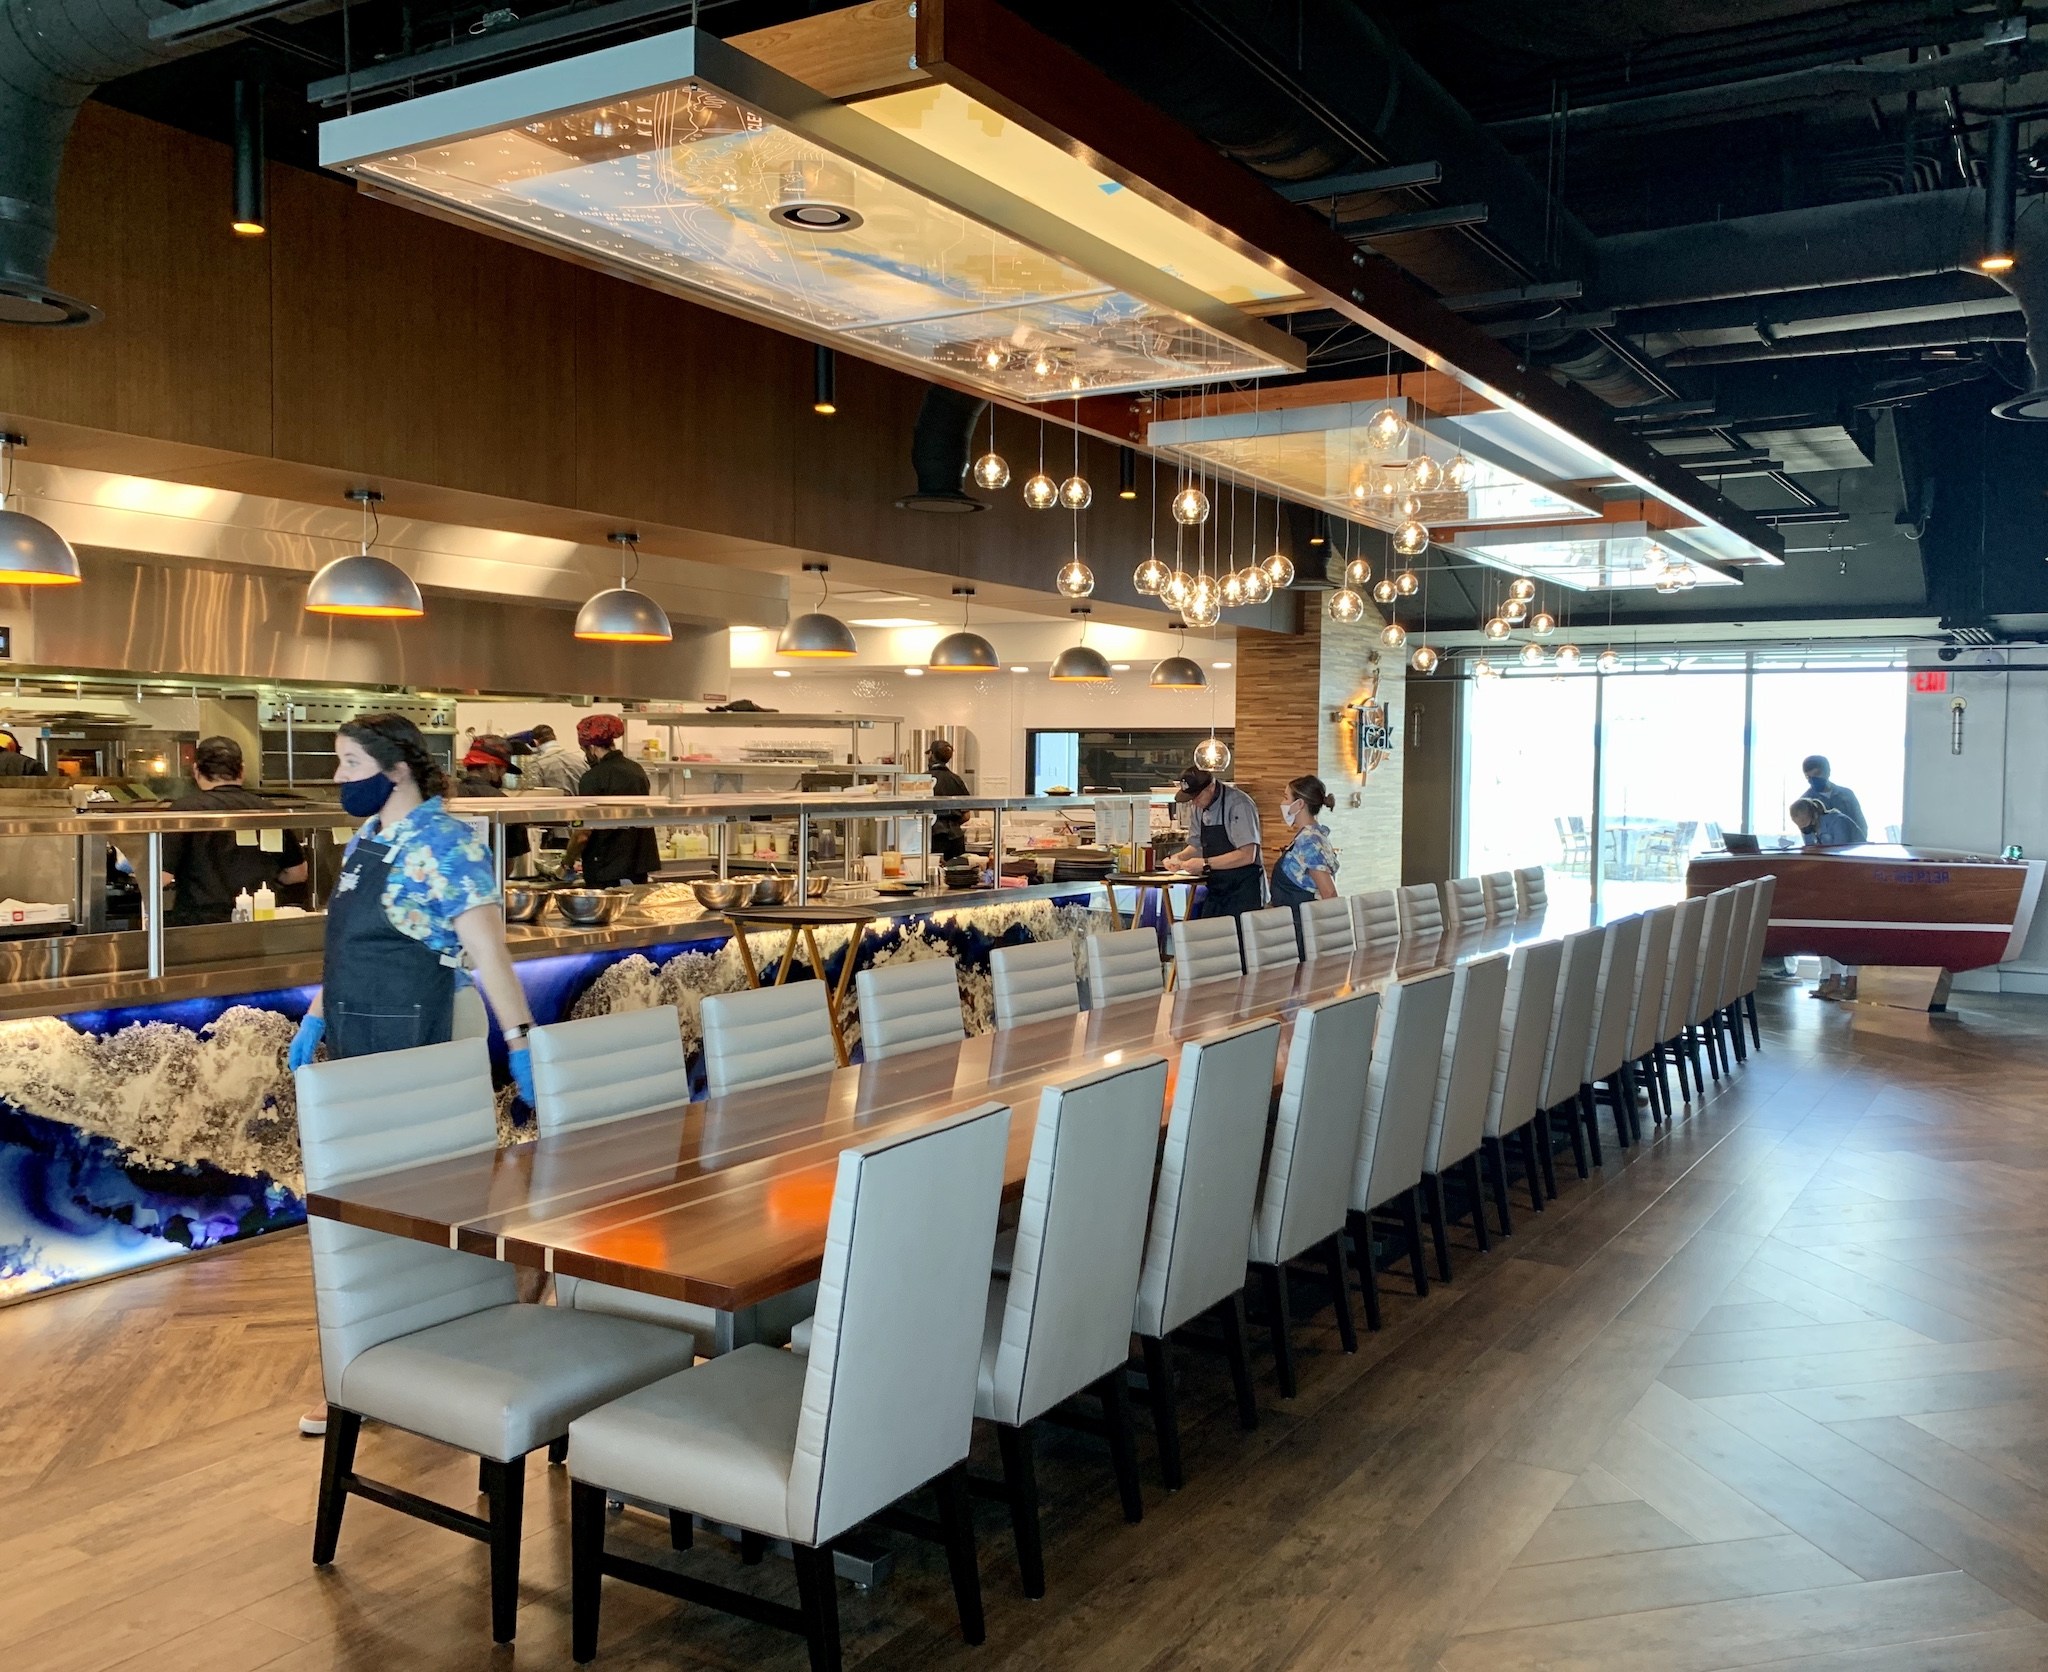 Teak at the St Pete Pier - Open kitchen with communal table